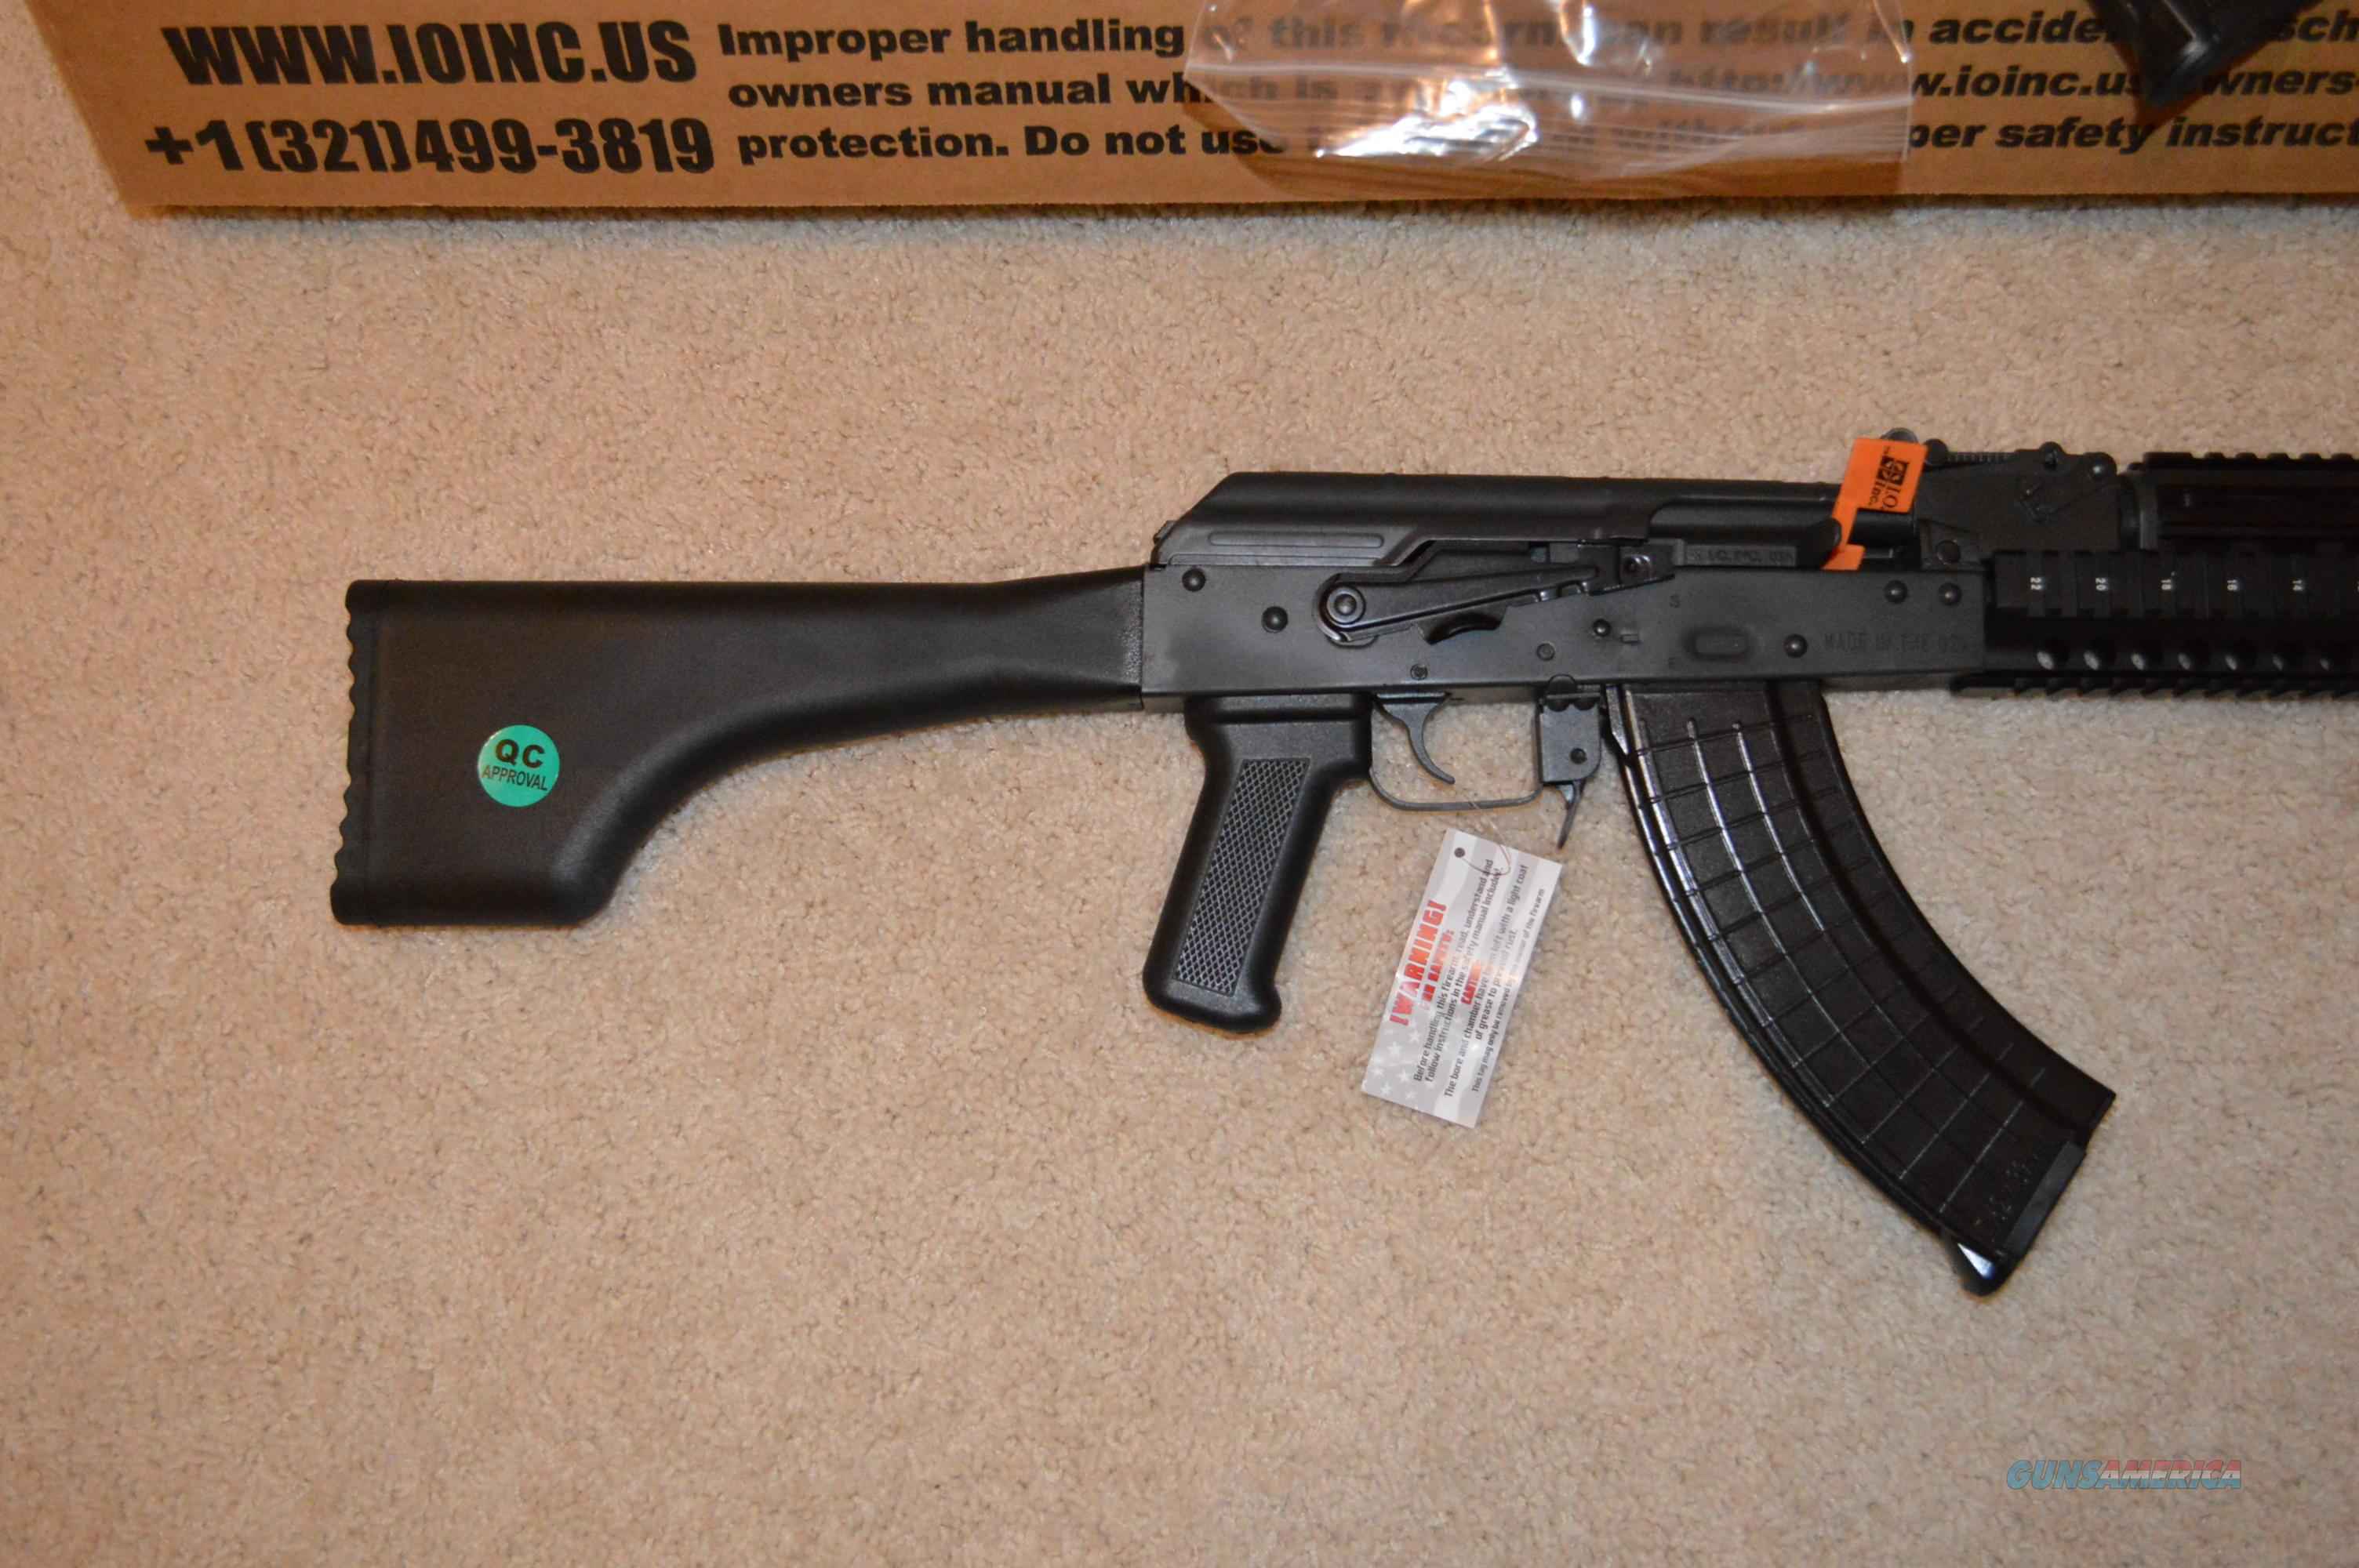 Ak ak 47 for sale by owner - 11609661 Jpg